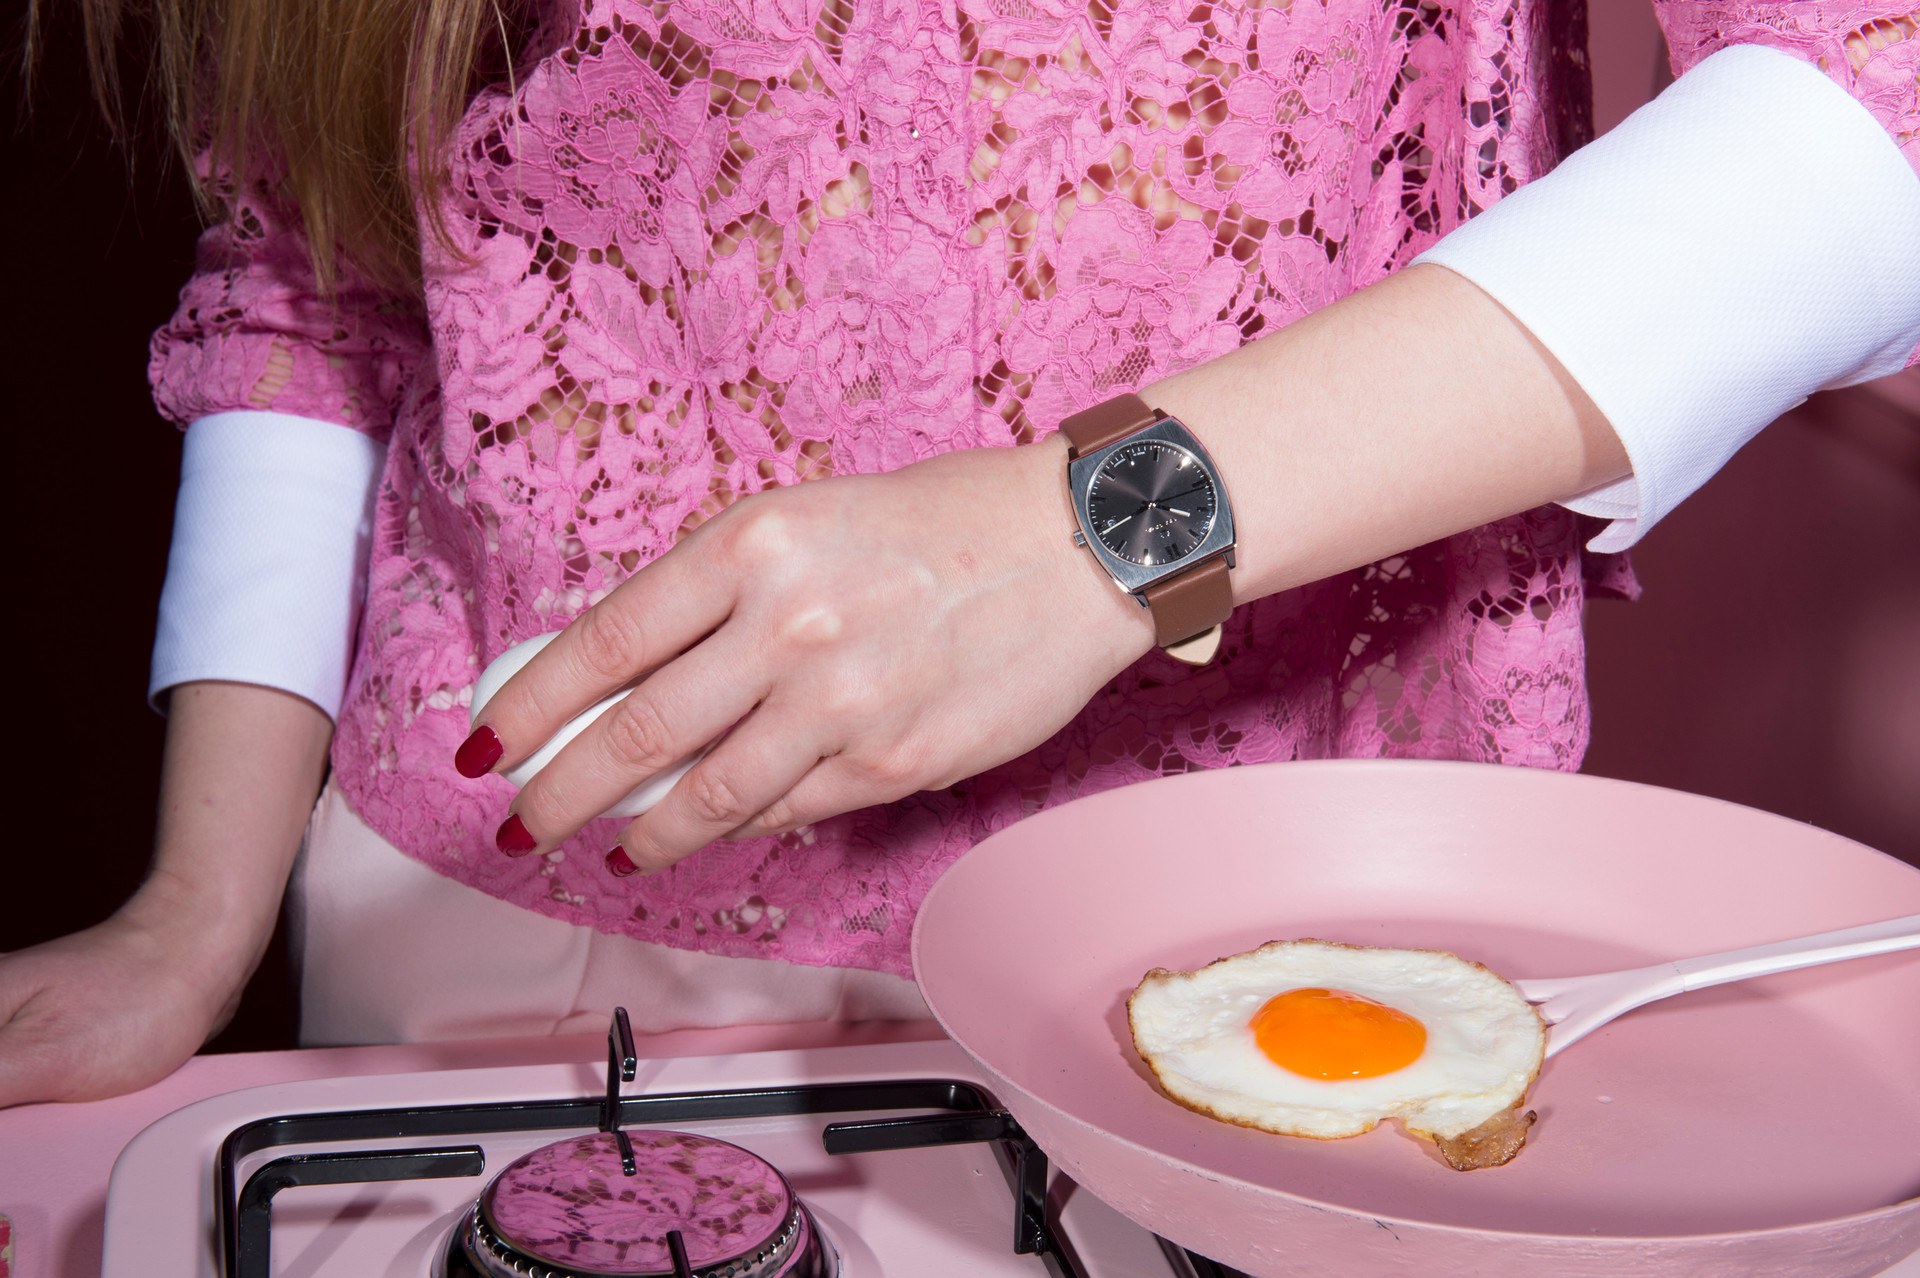 fashion, fashion photograpy, jewelery, style, accessories, color, lifestyle, fried egg, cookies, pink, stills, estura, vlado golub photography